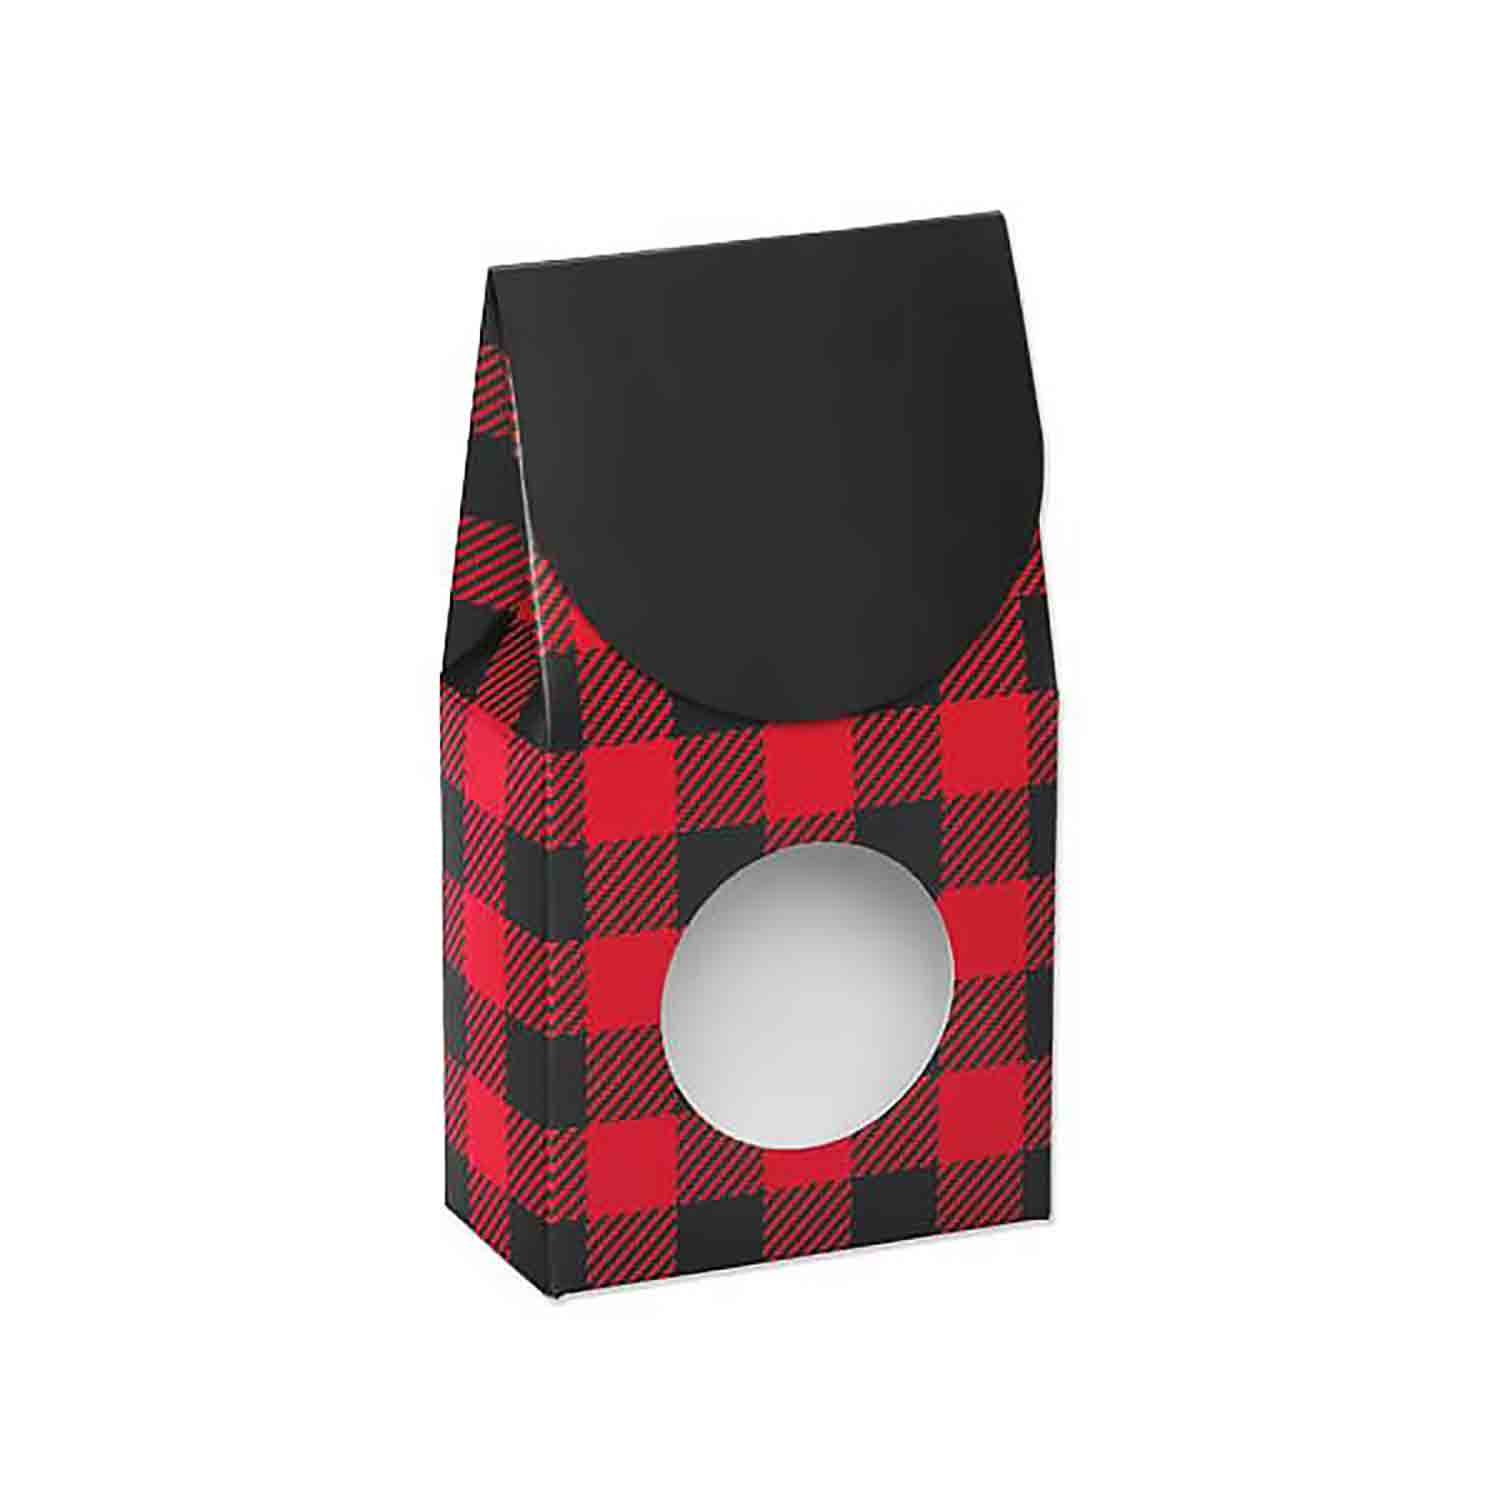 1 lb. Buffalo Plaid Candy Box with Window